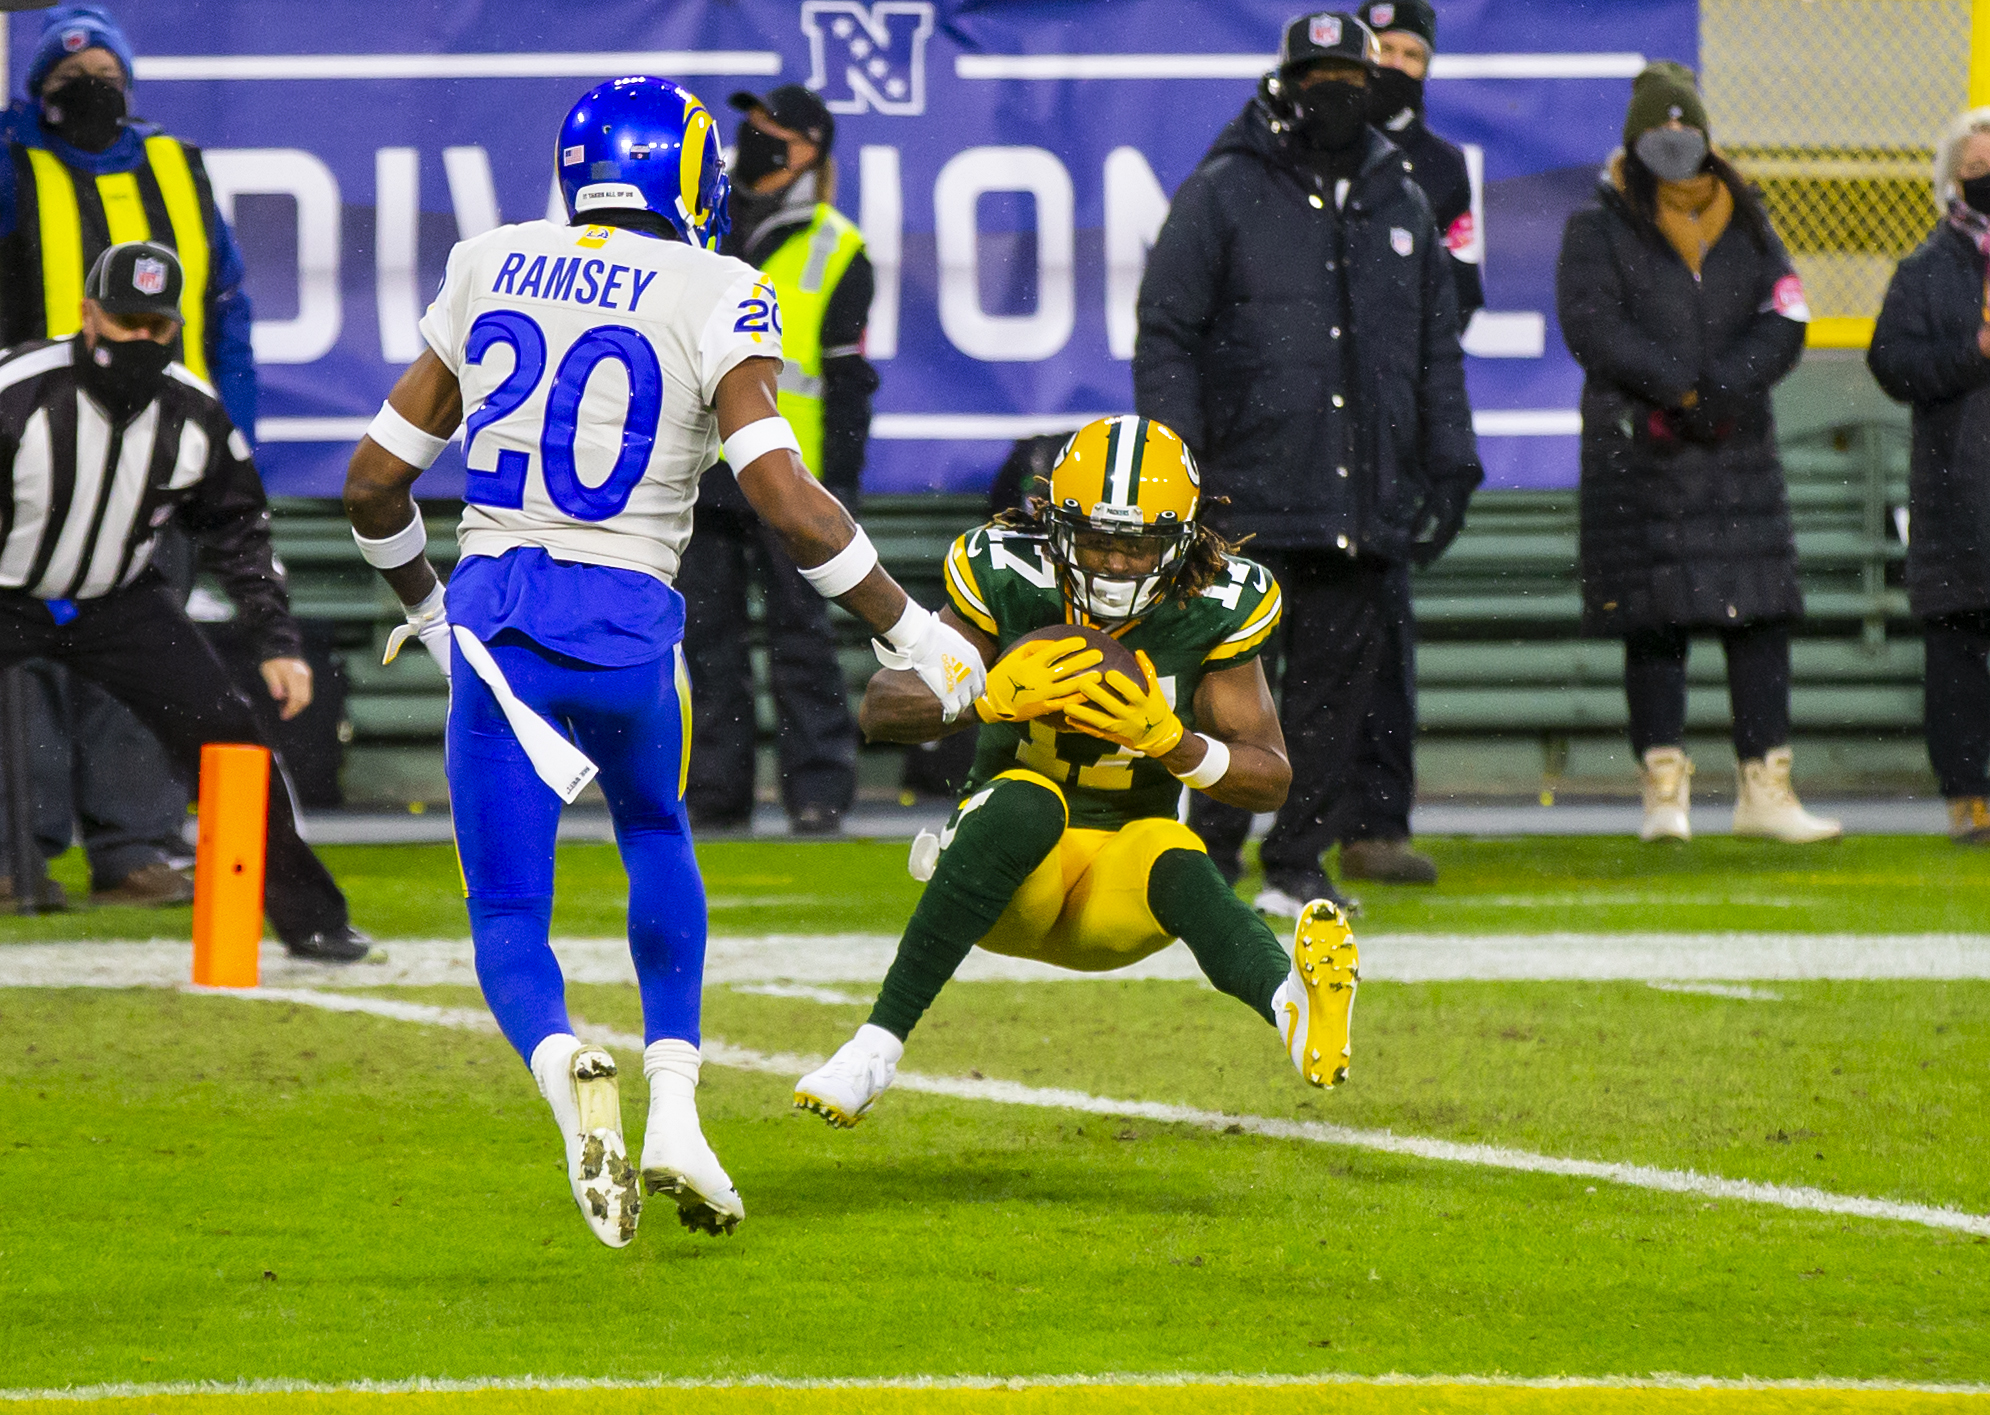 Jan 16, 2021; Green Bay, Wisconsin, USA; Green Bay Packers wide receiver Davante Adams (17) catches a touchdown pass against Los Angeles Rams cornerback Jalen Ramsey (20) in the first half of the NFC Divisional Round at Lambeau Field. Mandatory Credit: Mark J. Rebilas-USA TODAY Sports